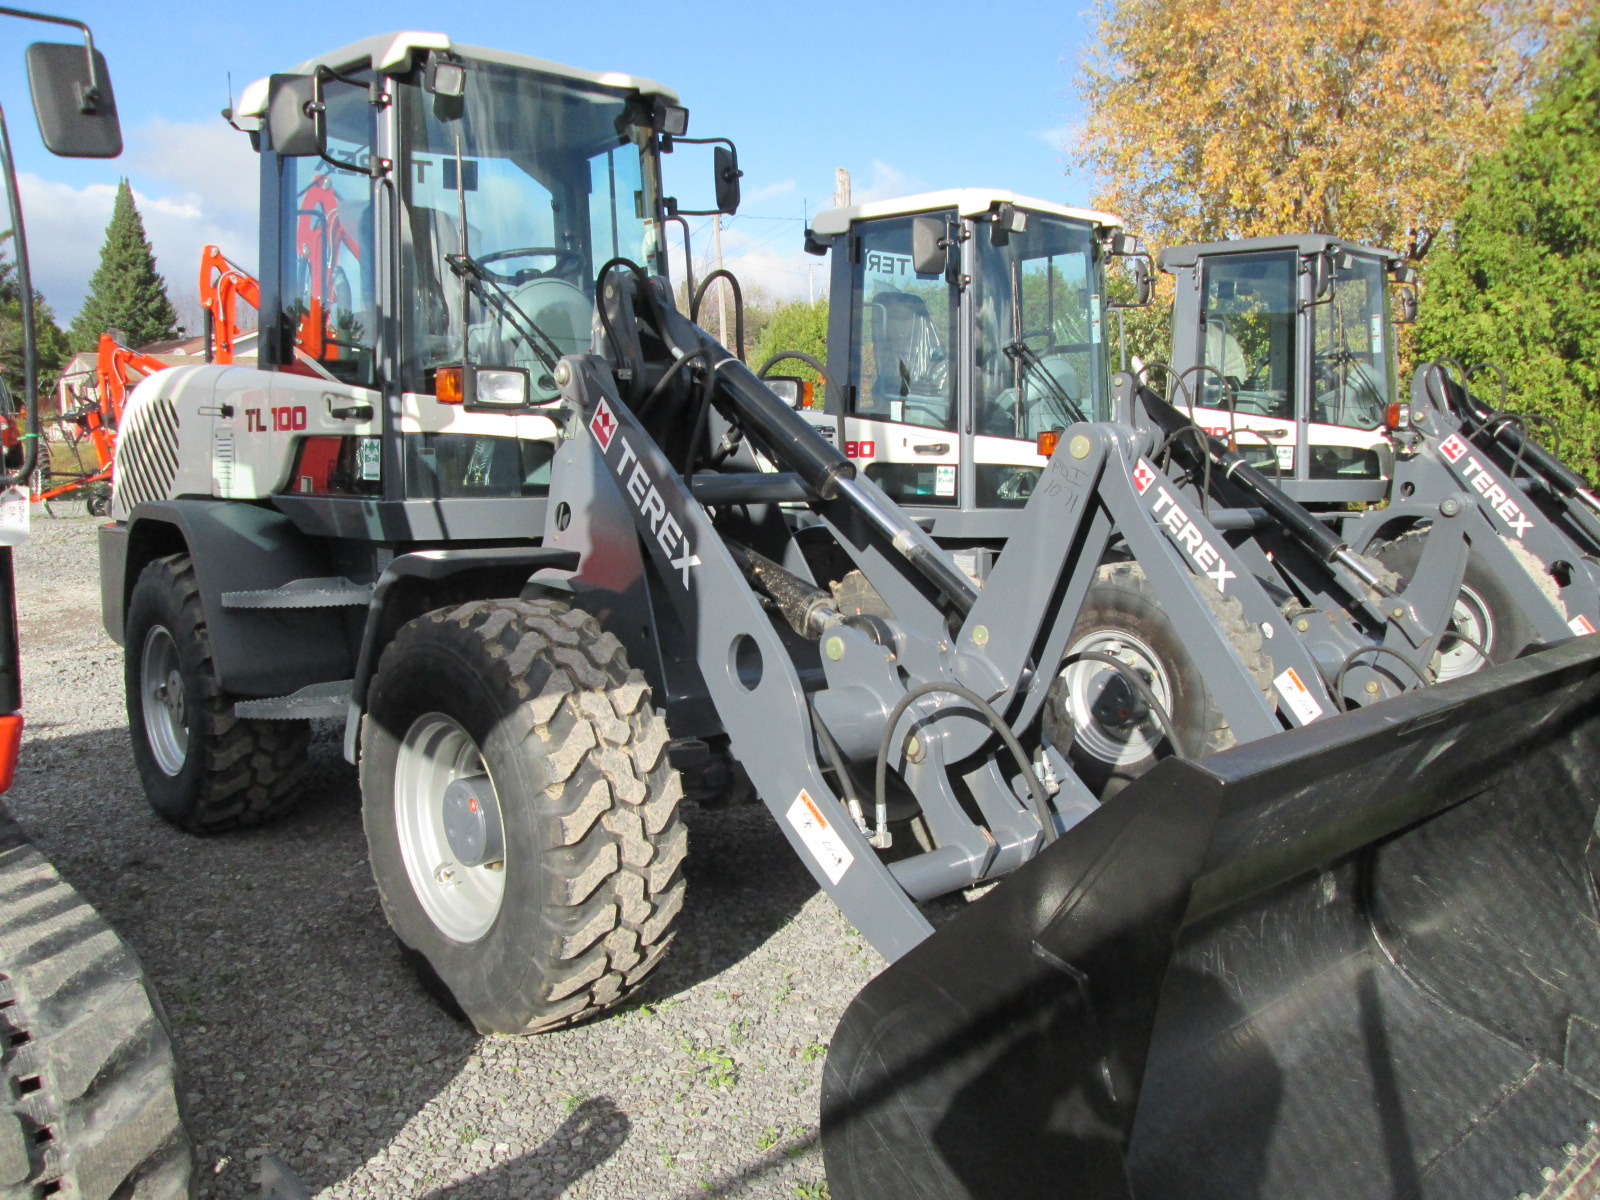 We offer a wide range of equipment, so whether you need a day or a week, your tasks can be completed on your timeline.